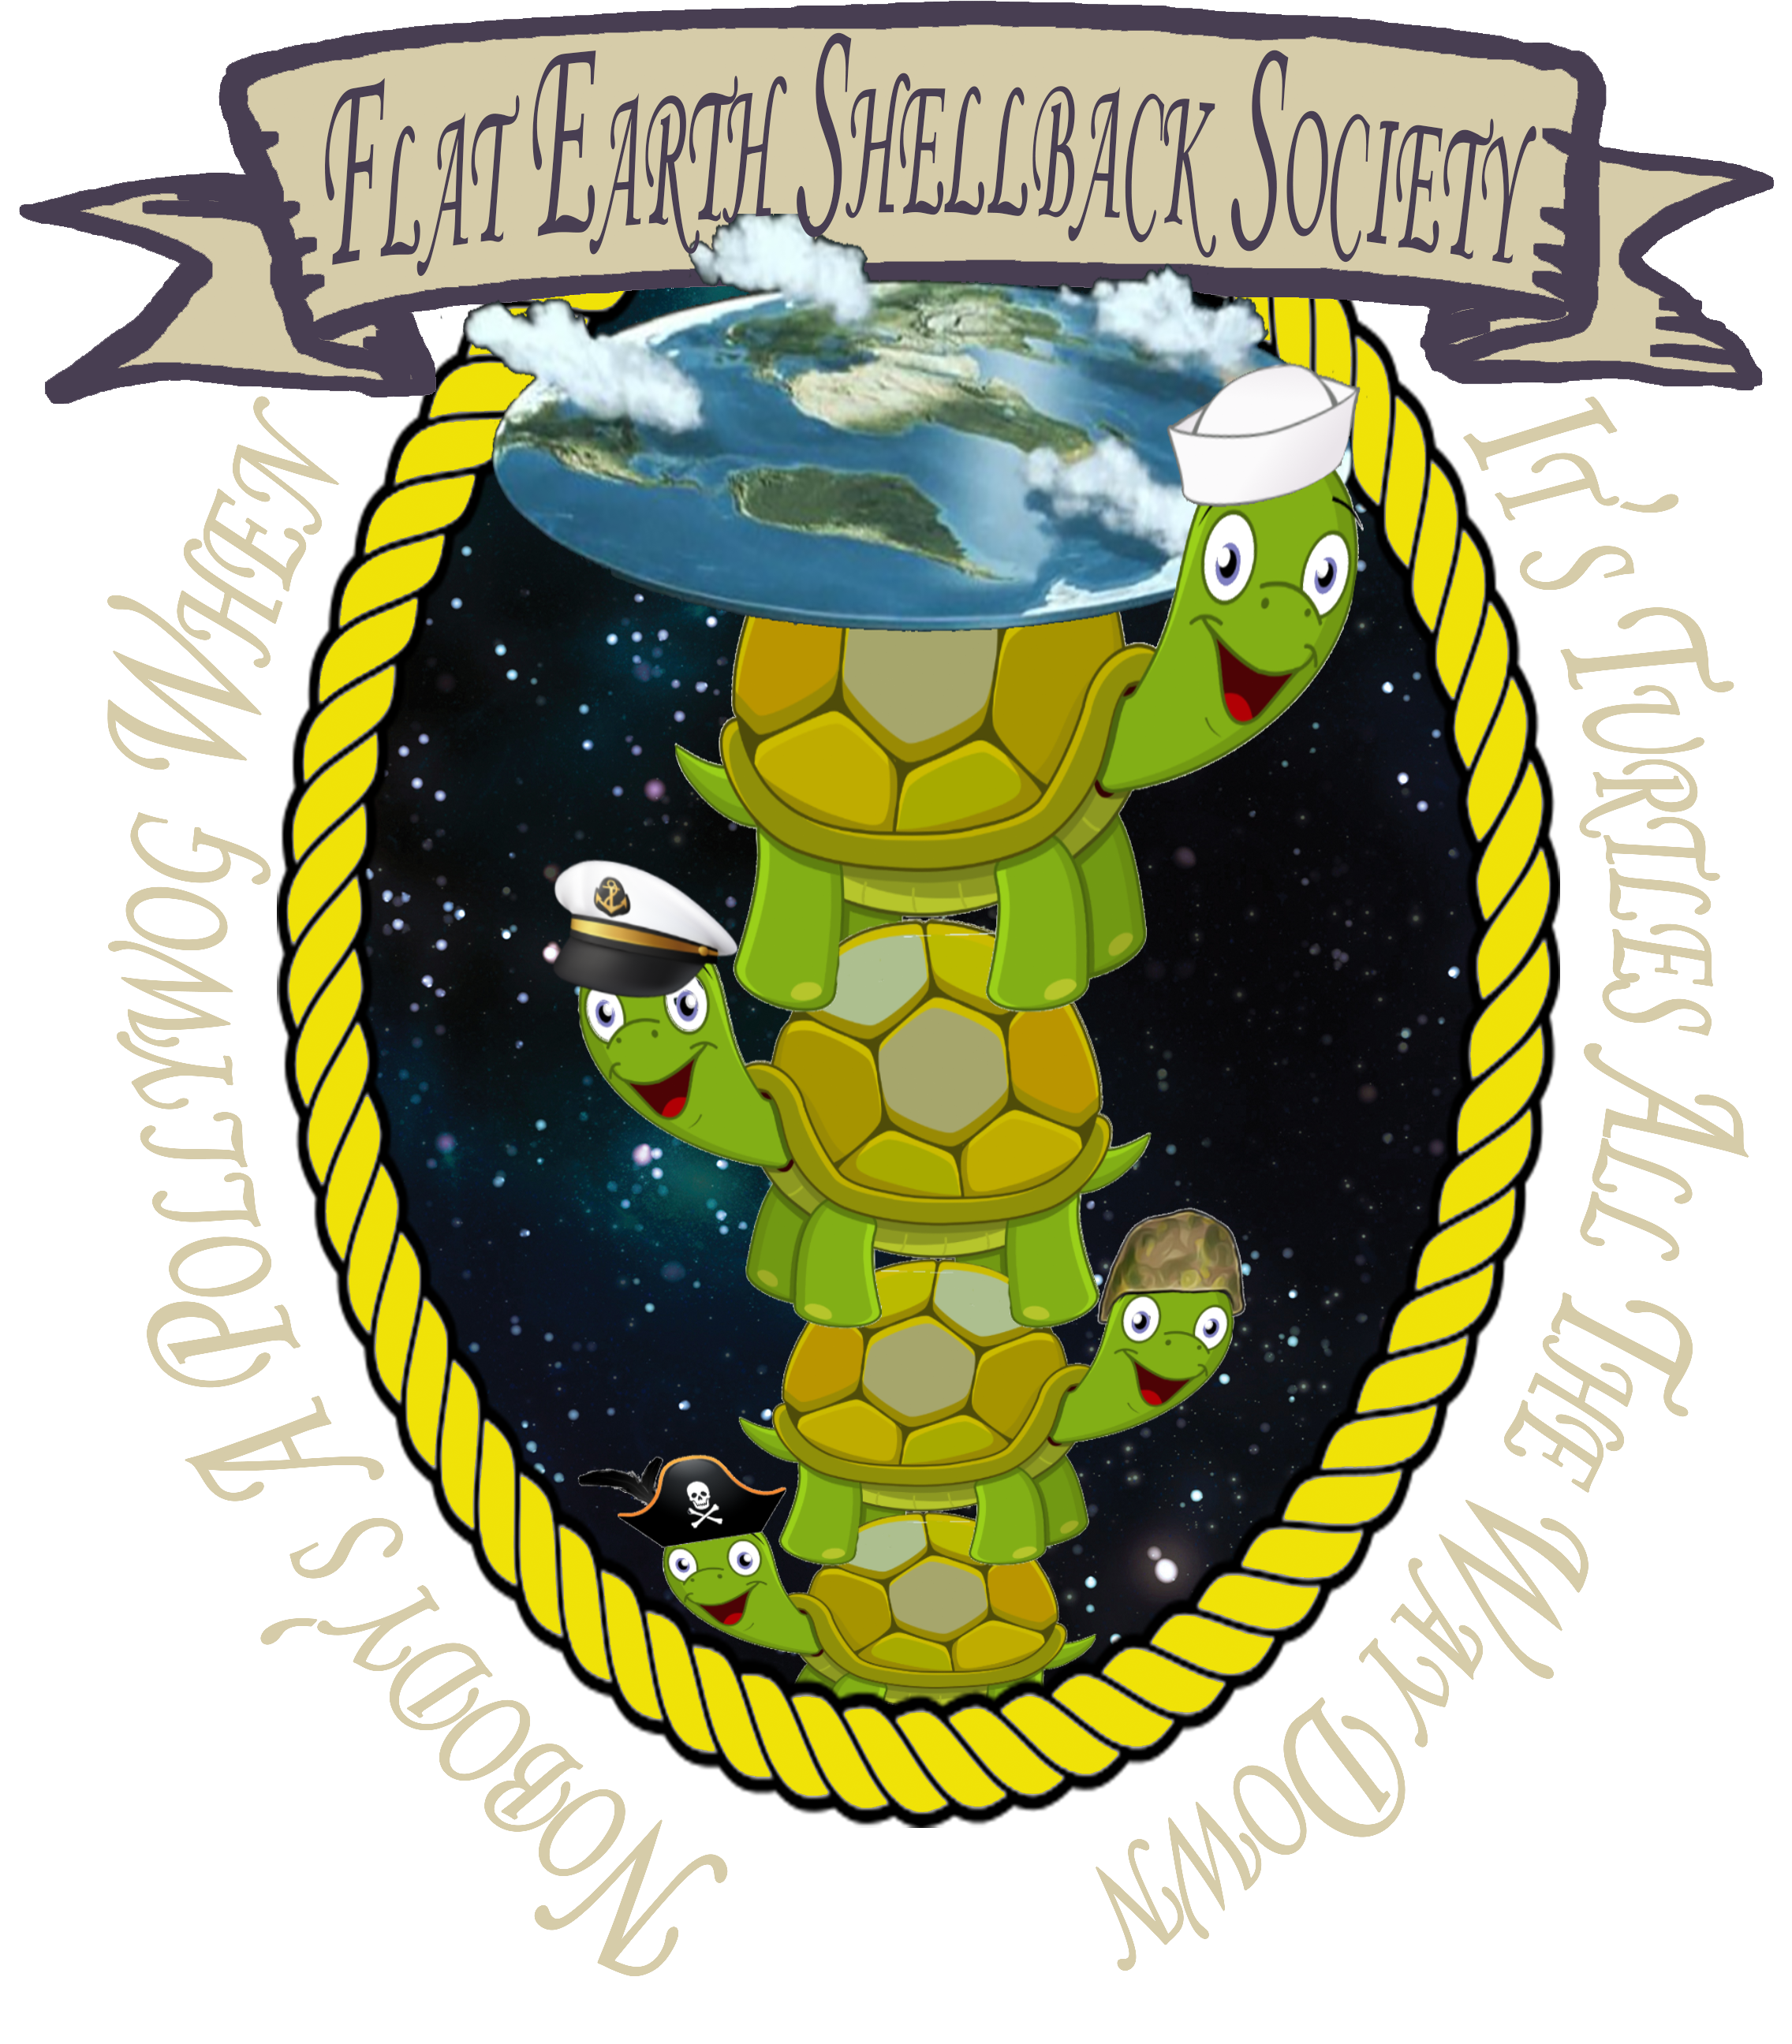 Flat Earth Shellback Society